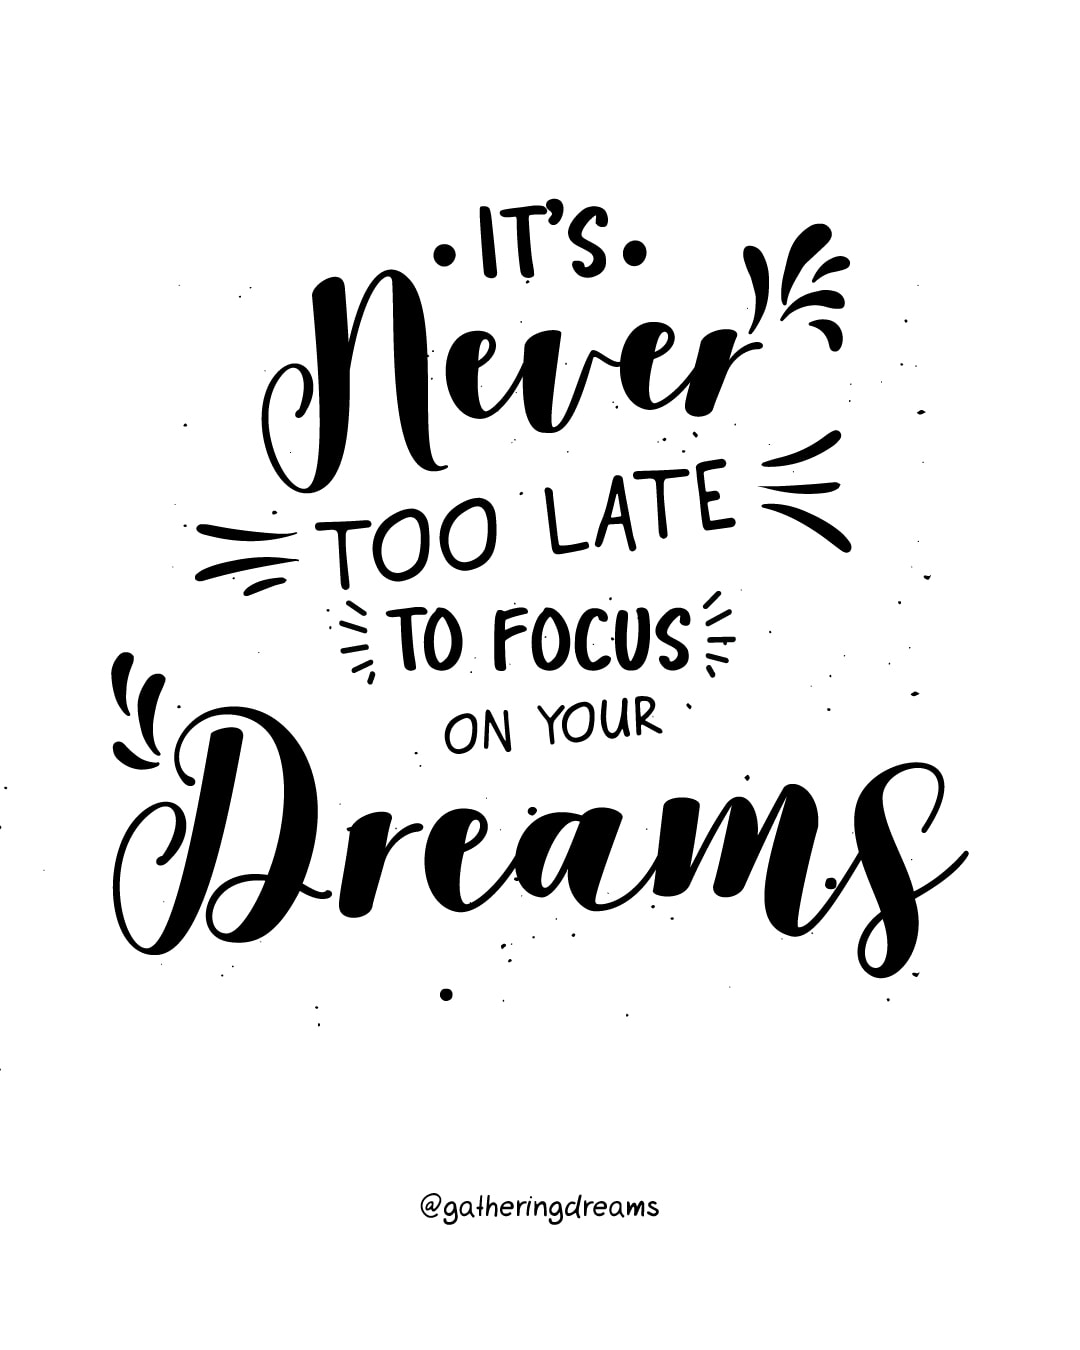 """It's never too late to focus on your dreams.""- The best dreams quotes of all times #inspiration #inspirationalquotes #motivationalquotes #dreams"